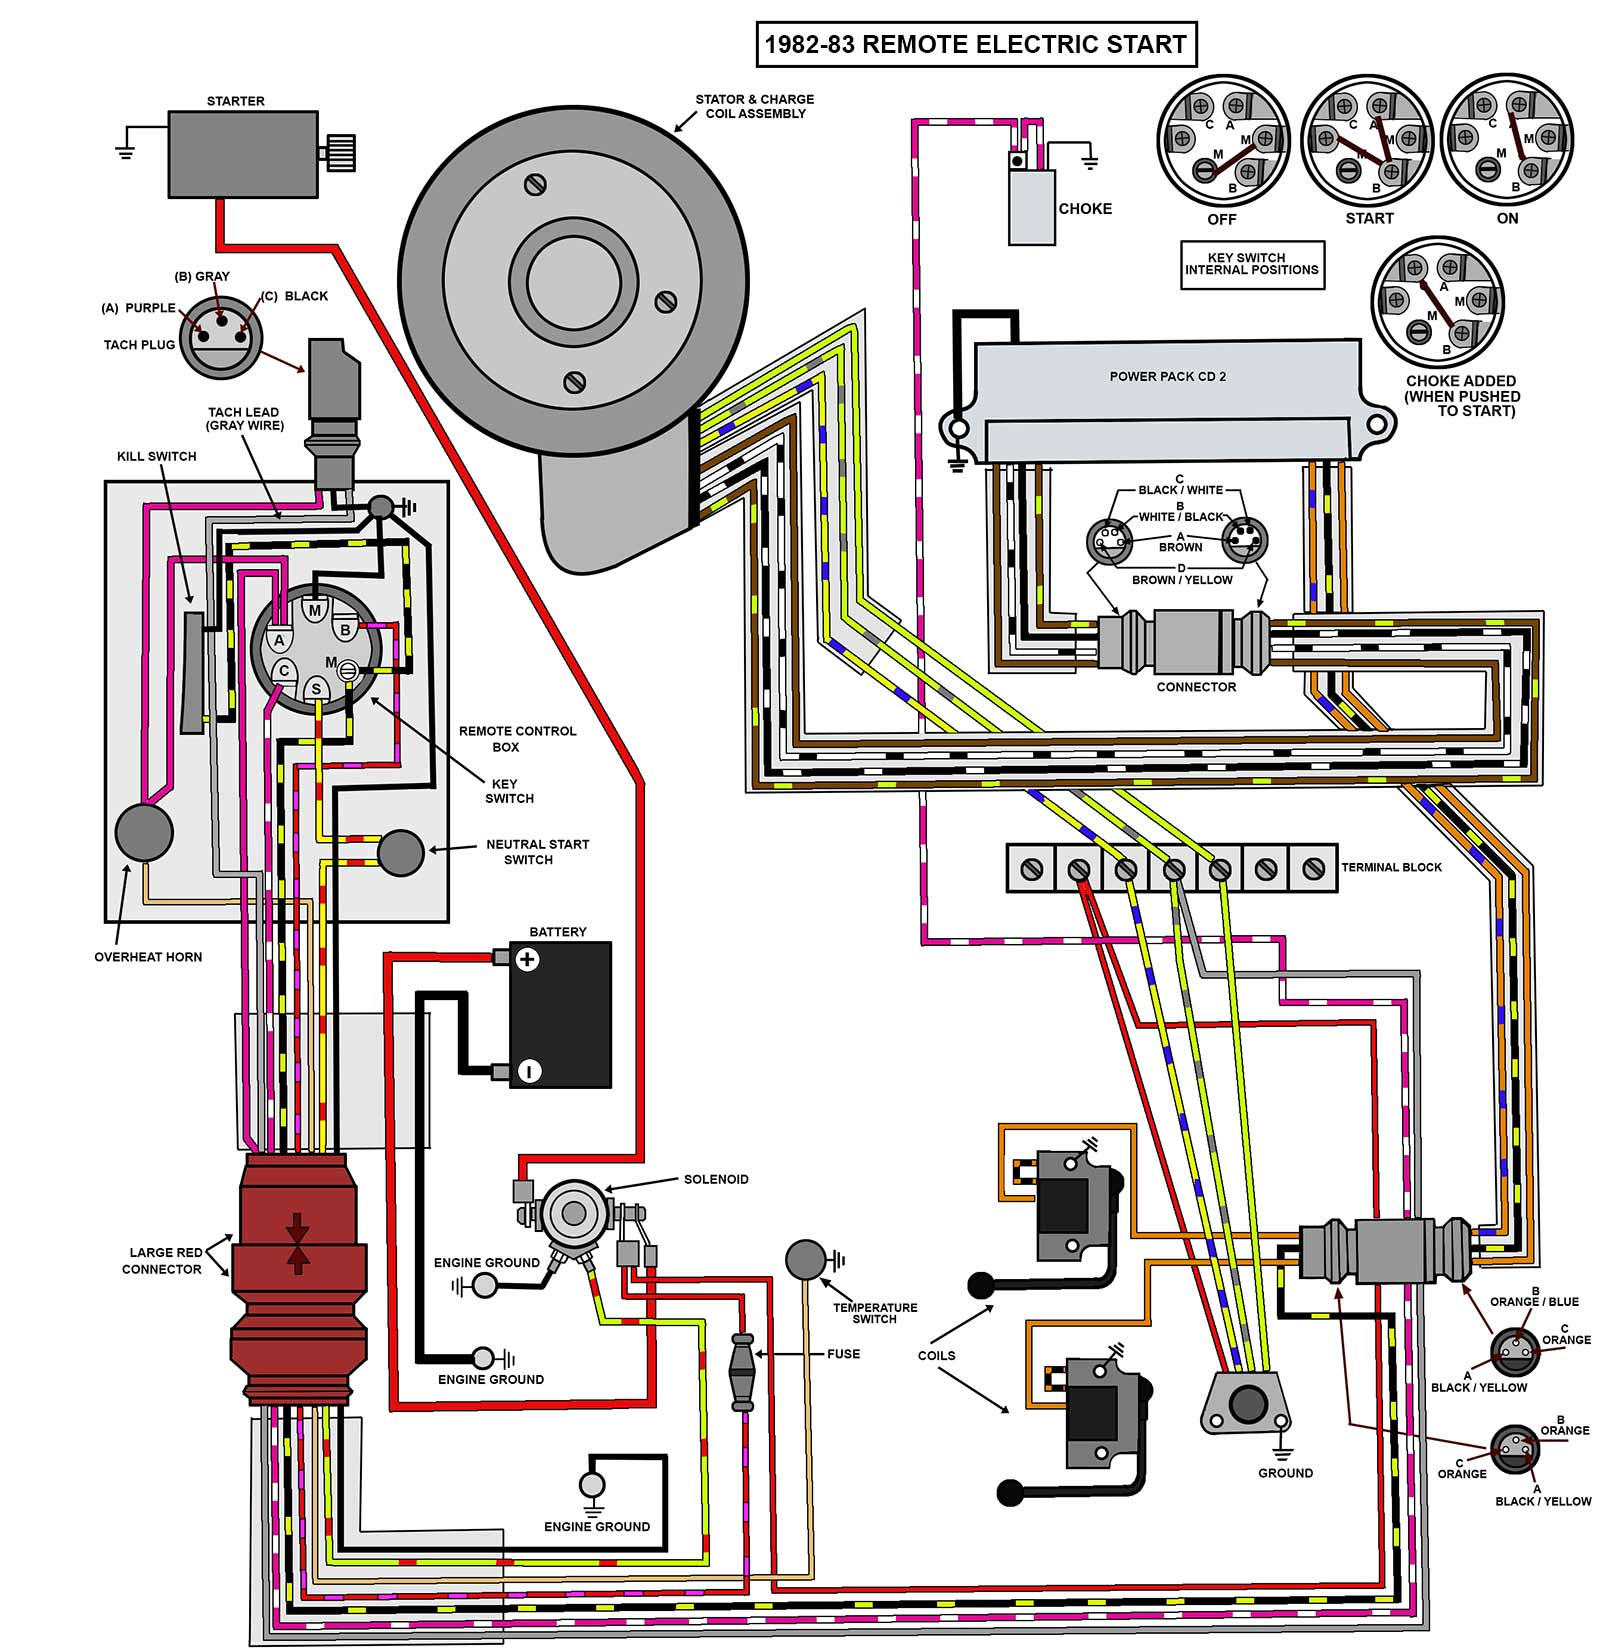 1979 Evinrude Wiring Diagram Trusted Schematics 1982 Honda Express Diagrams Electrical Outboard Lower Unit Parts Motorwallpapers Org